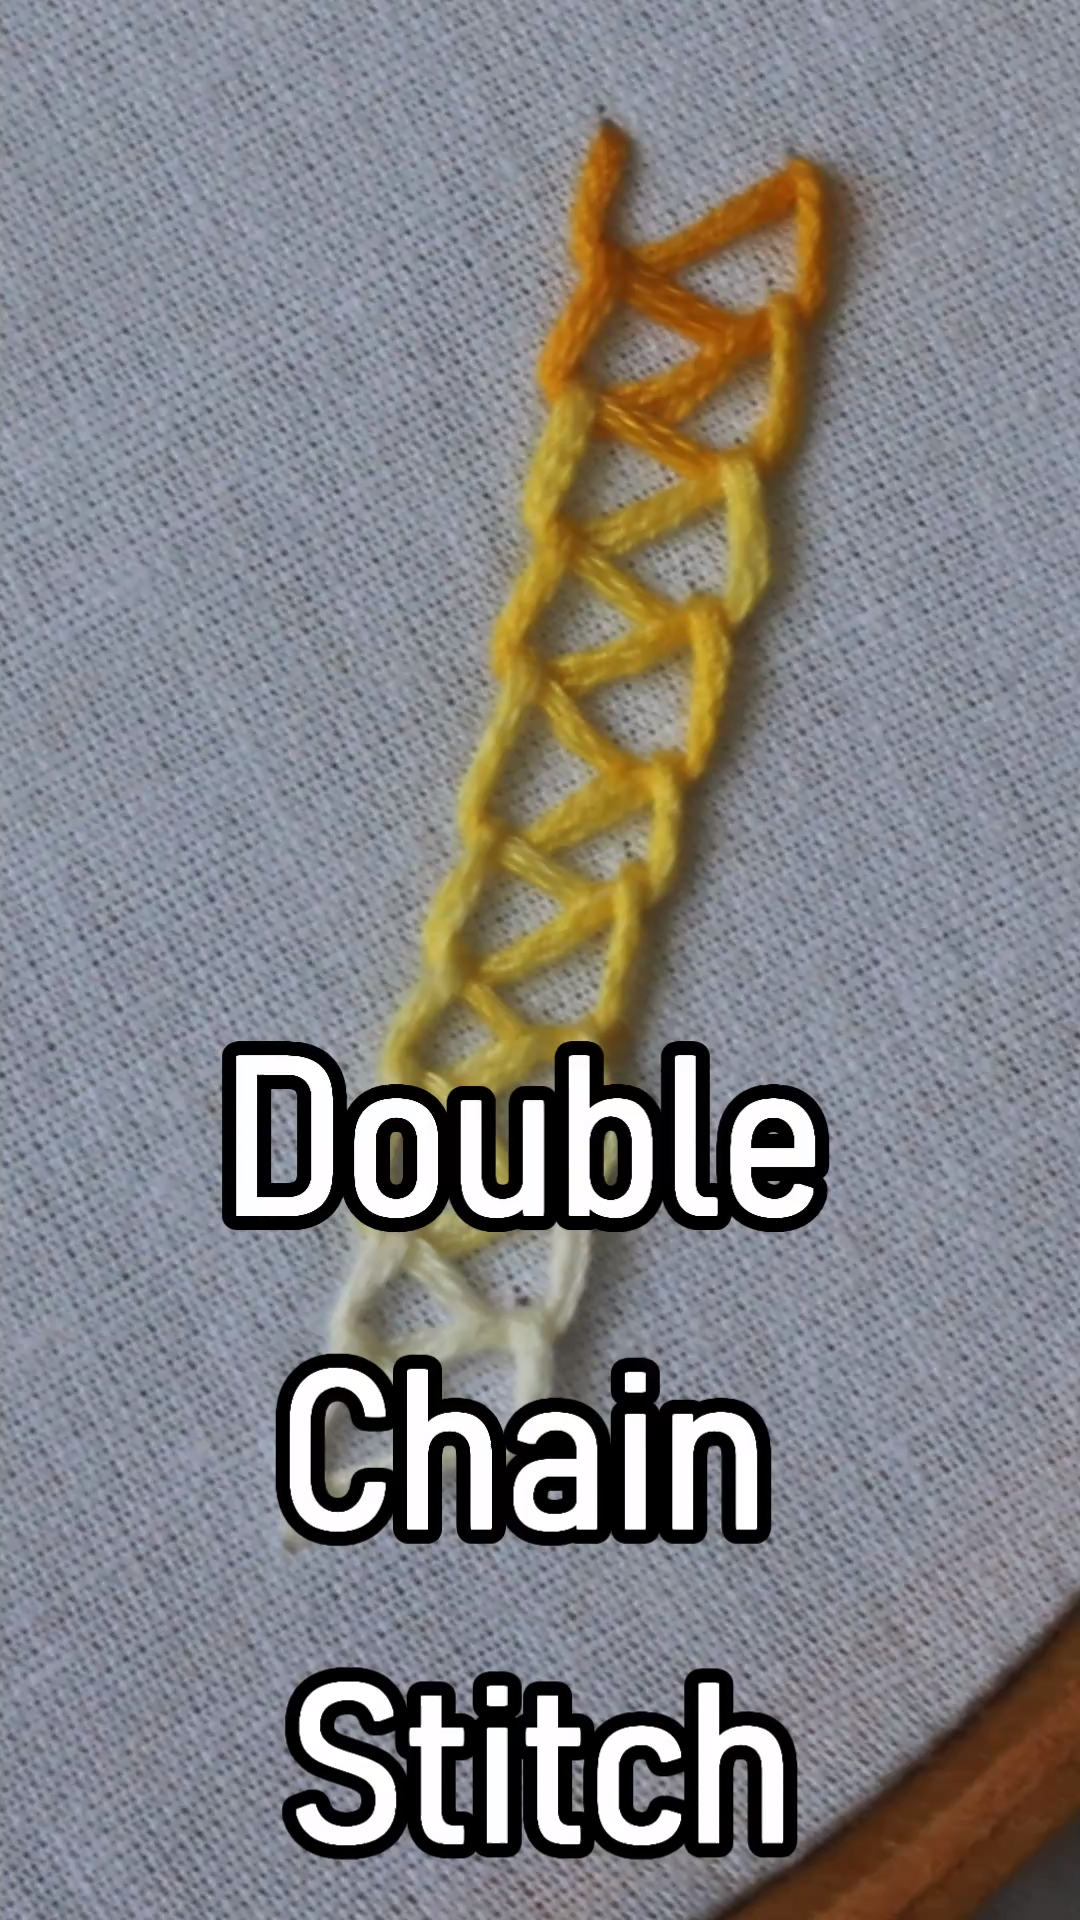 Double Chain Stitch in #embroidery #embroidery